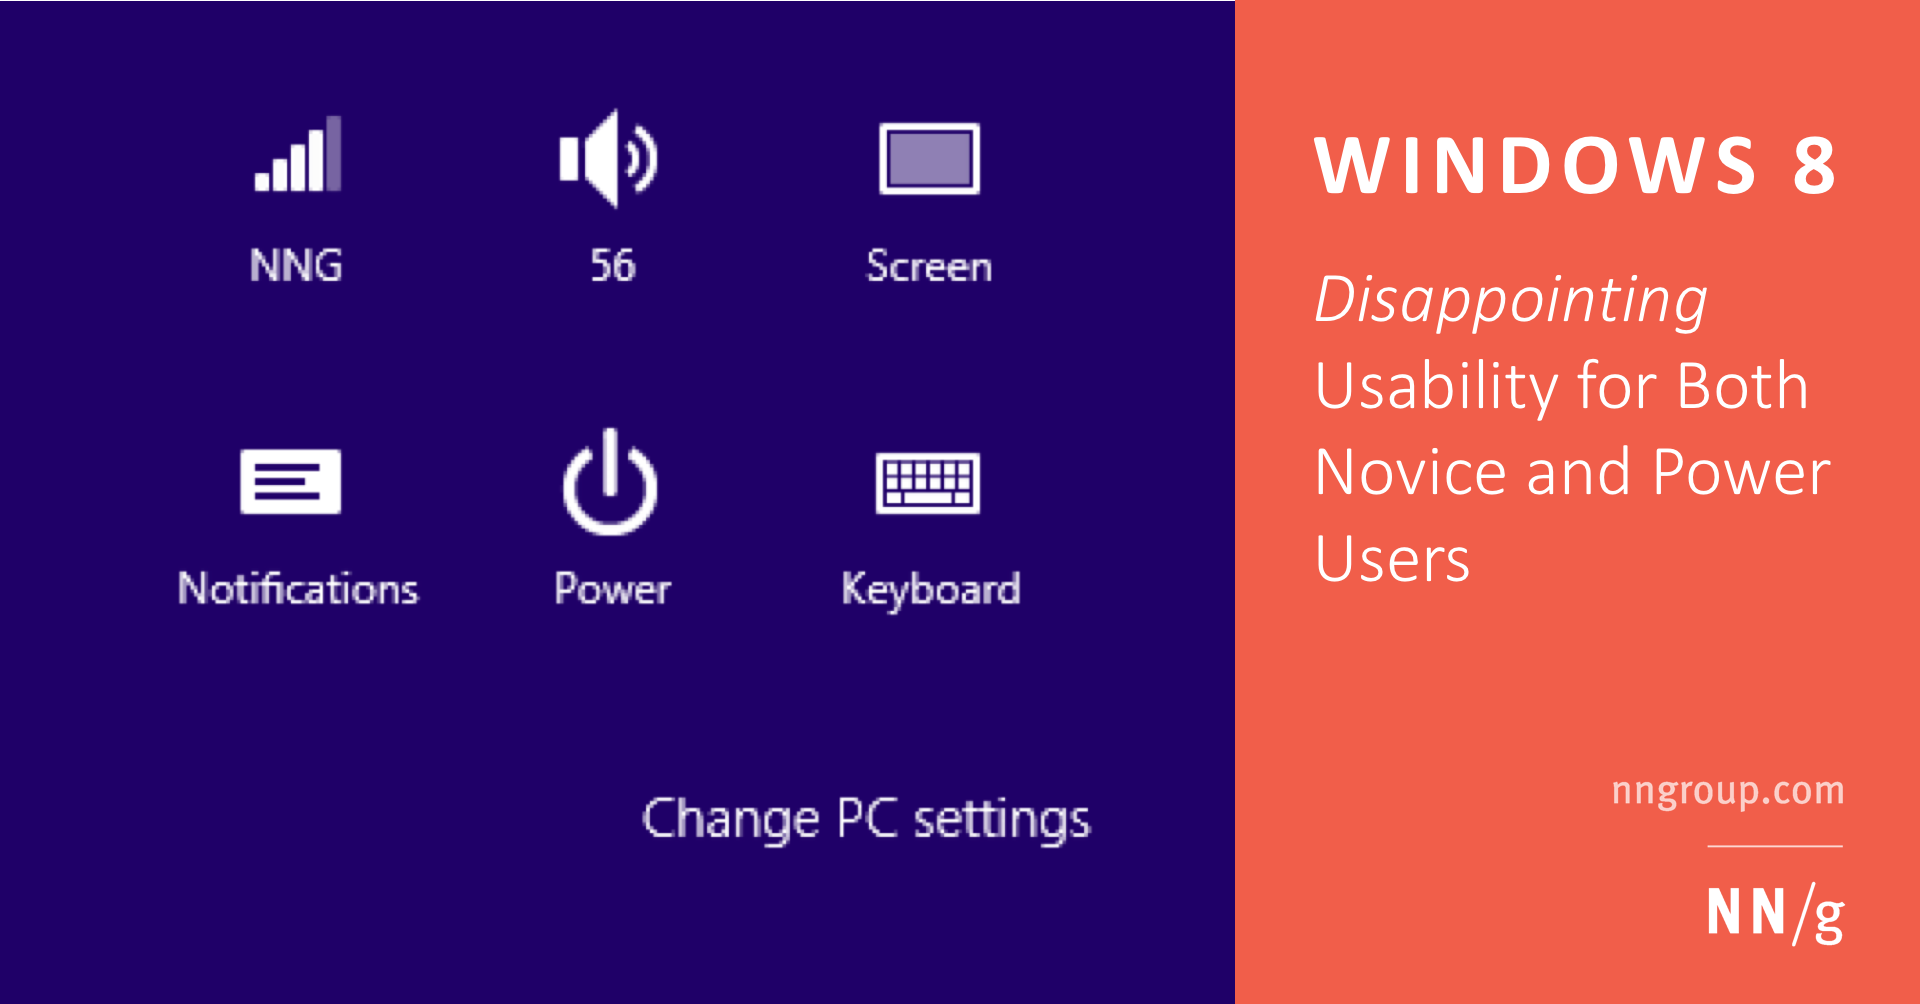 Windows 8 — Disappointing Usability for Both Novice and Power Users